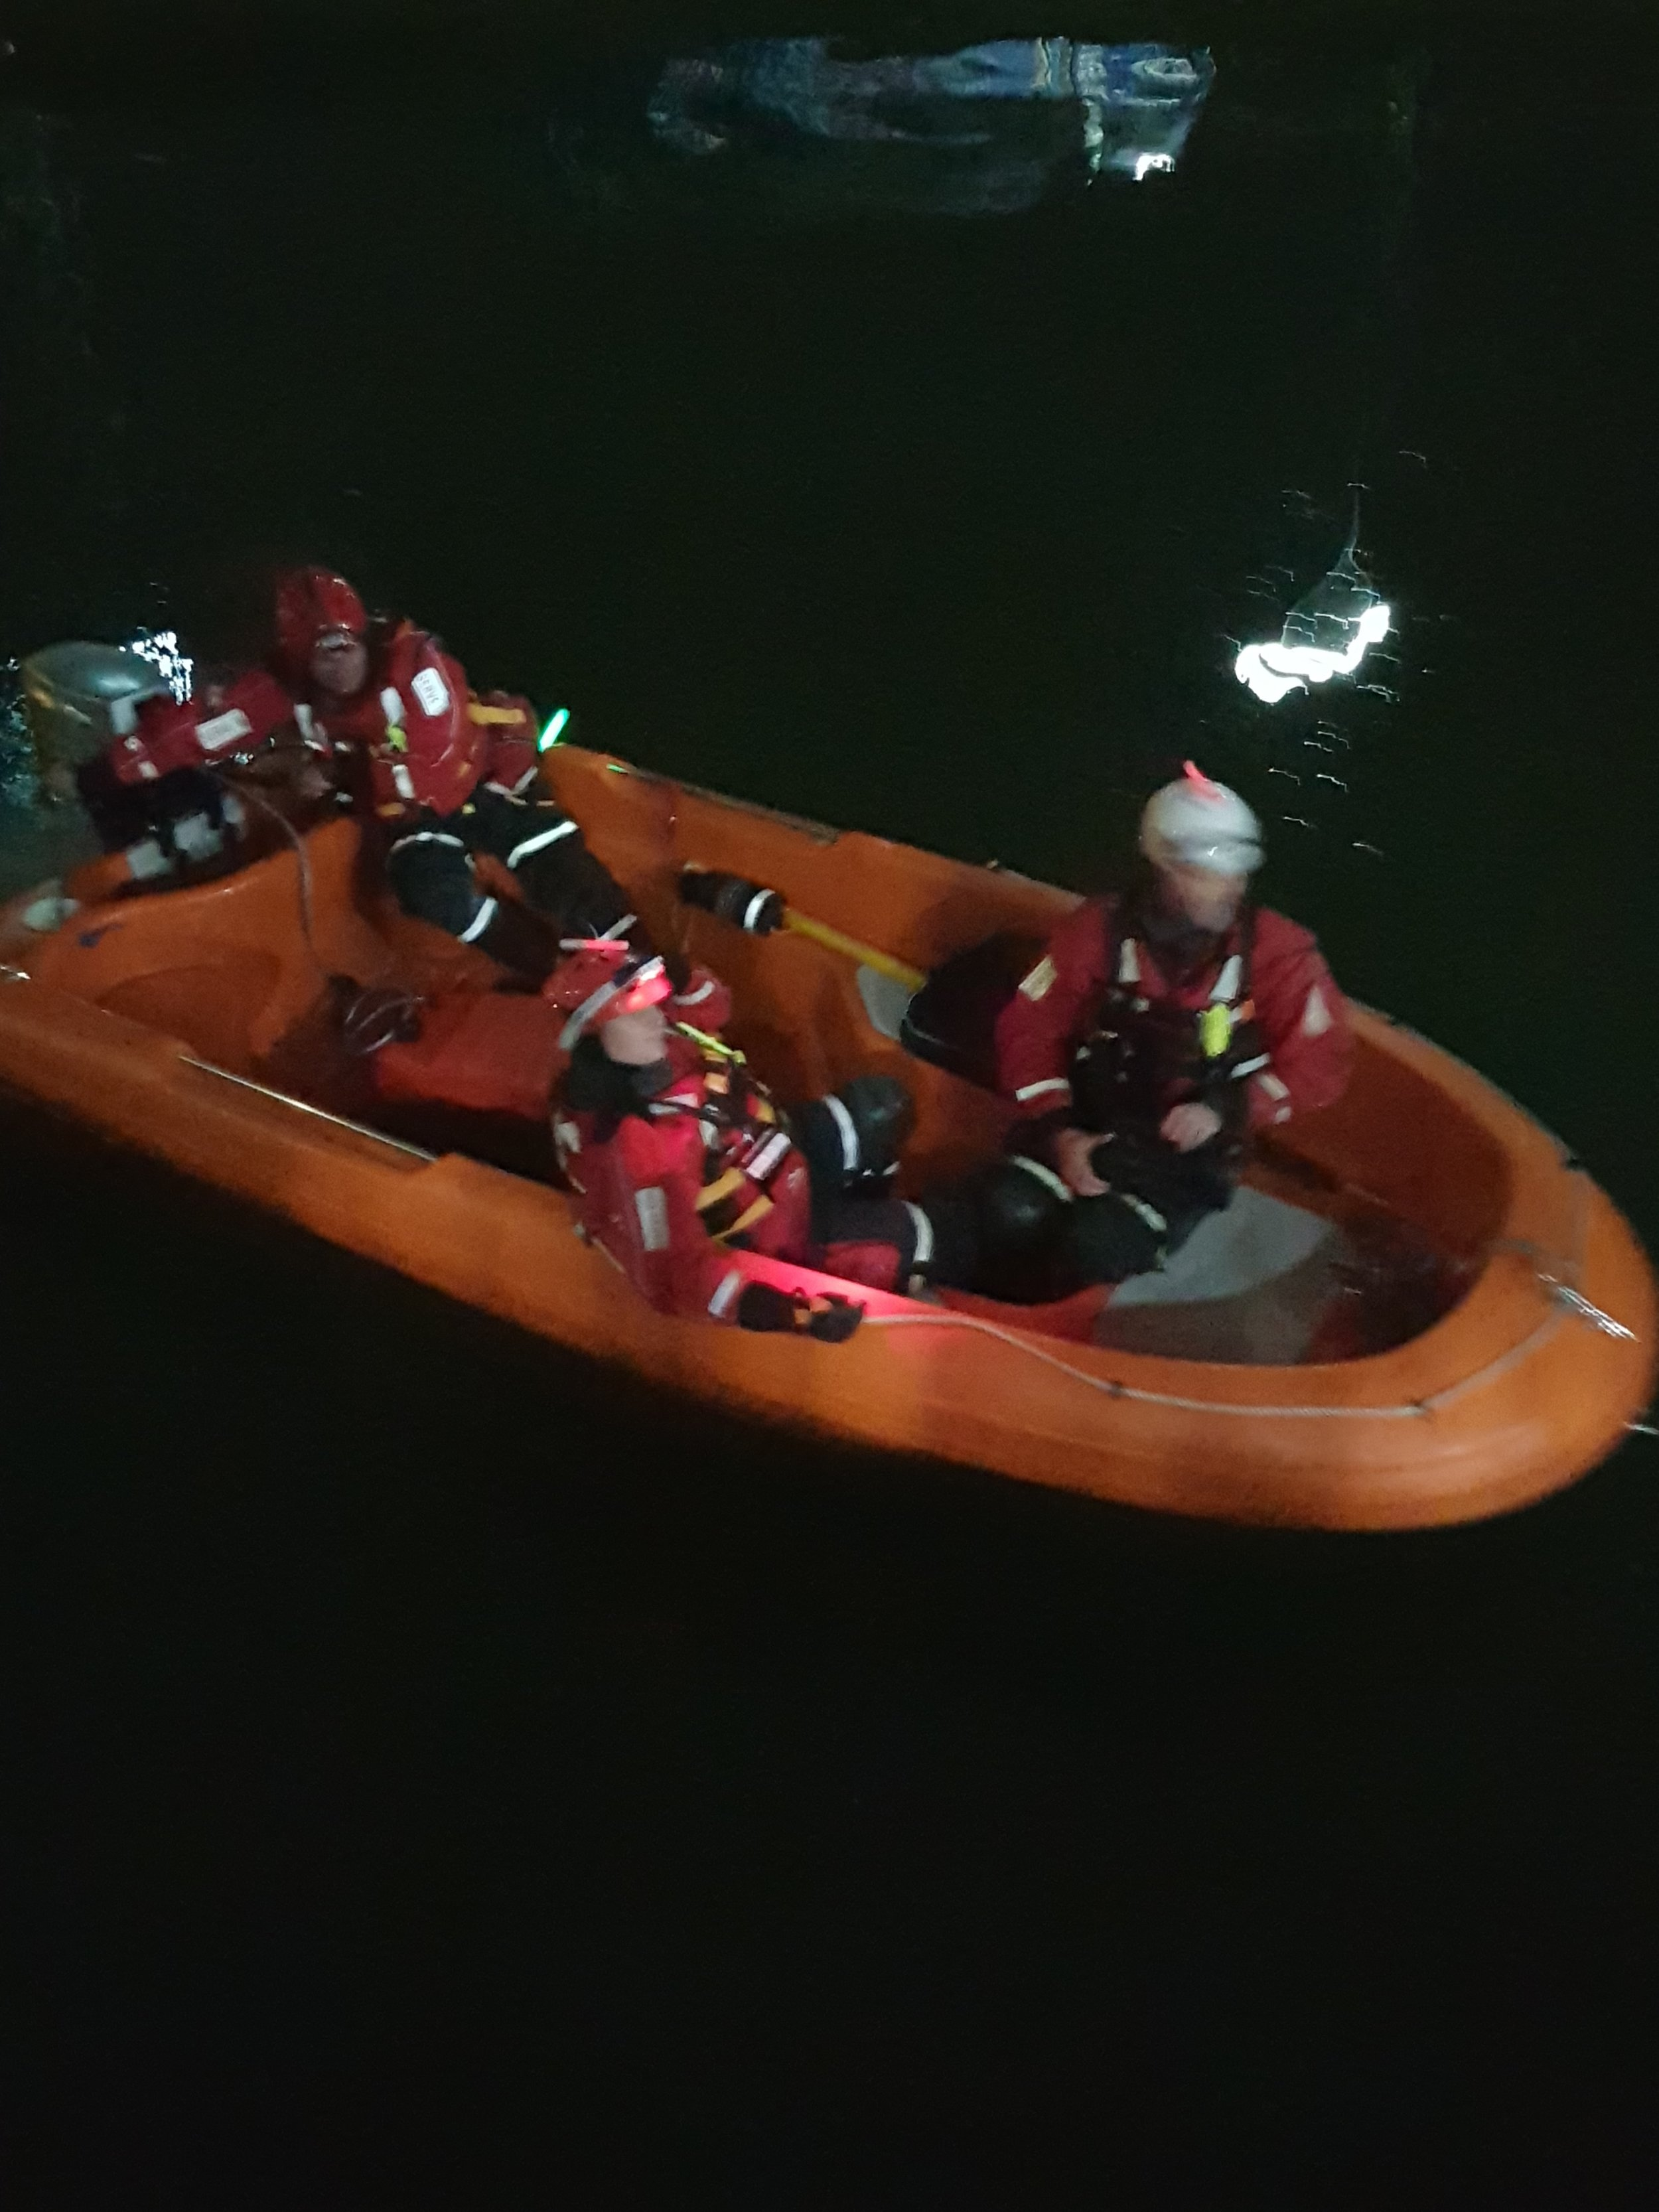 The Serve On boat crew patrol the River Avon in support of SARAID Avon CRT and the #DontDrinkAndDrown campaign.